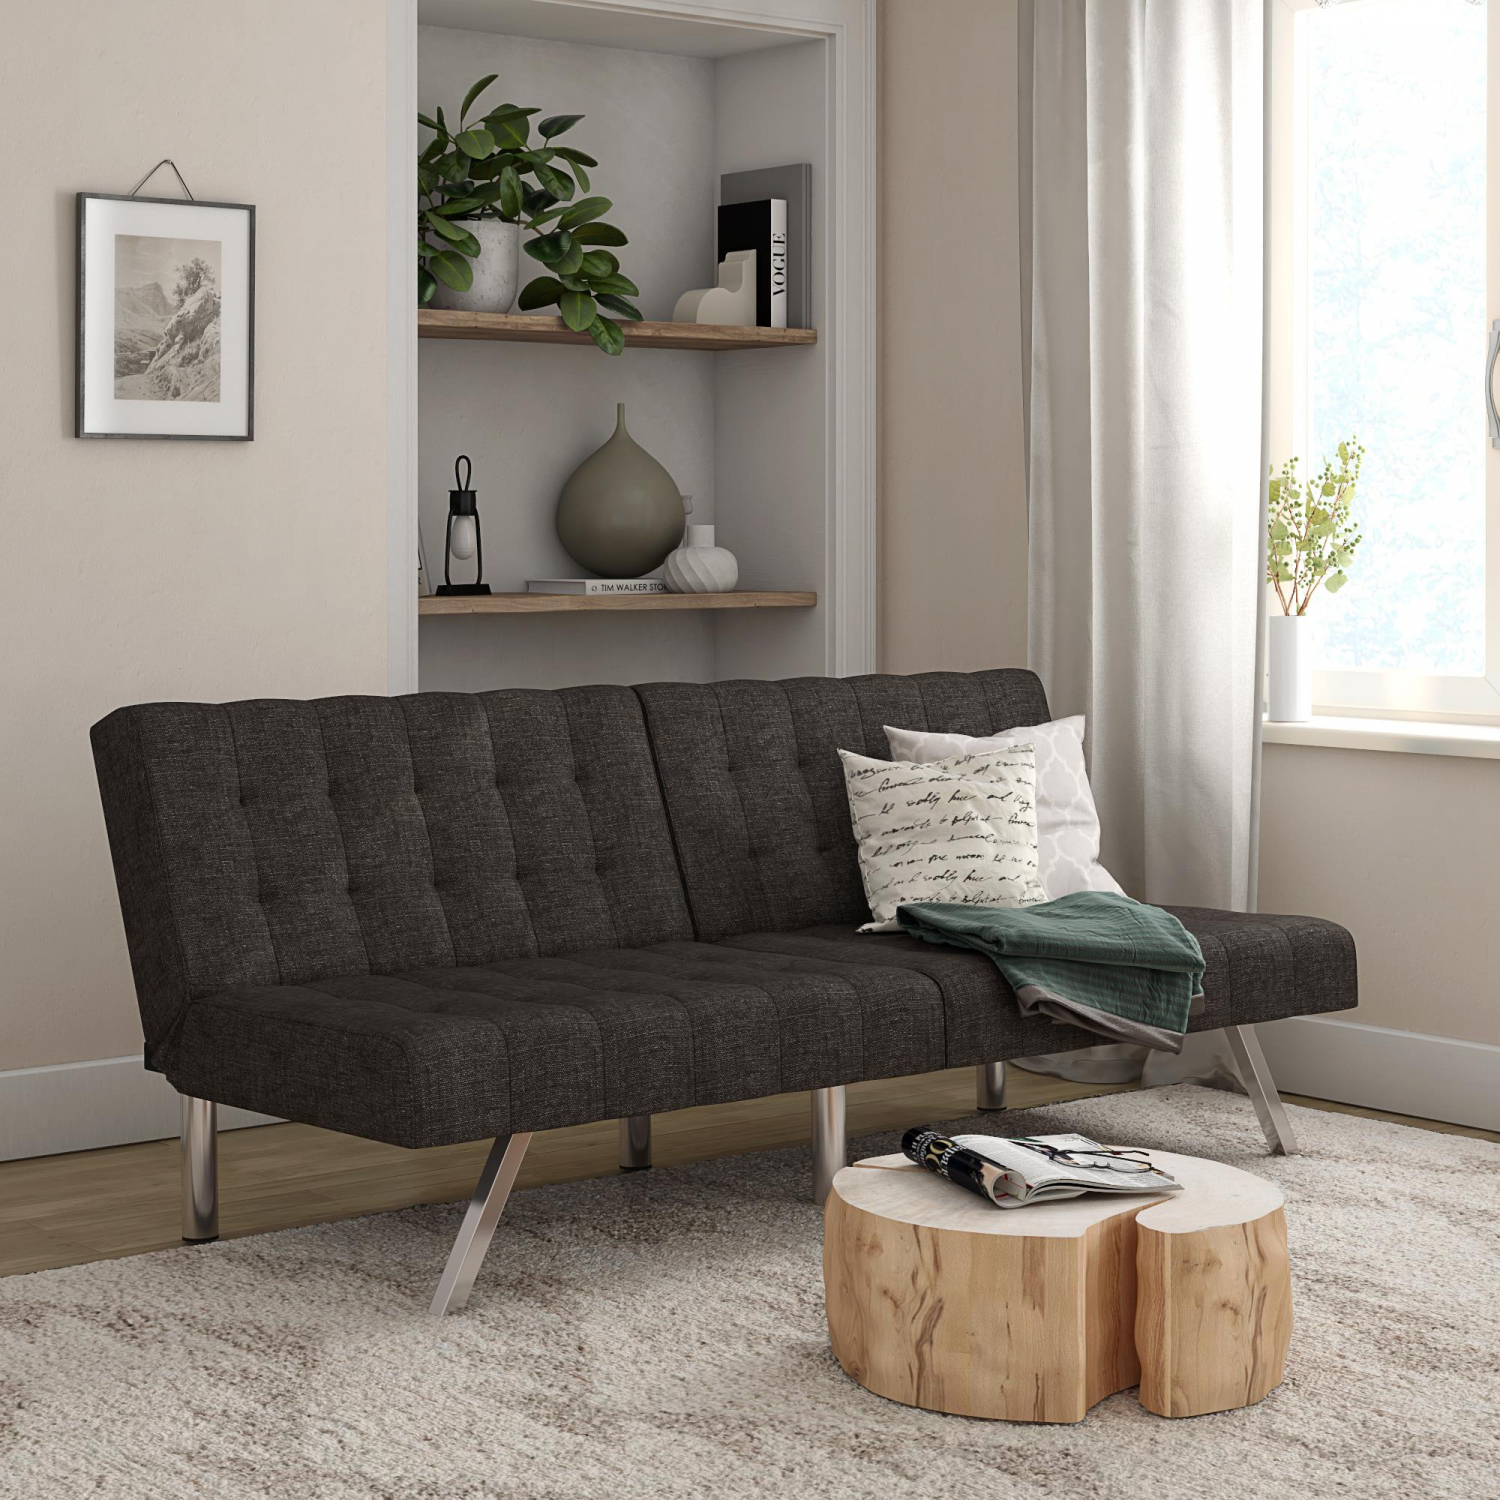 Details About Modern Tufted Futon Sofa Bed Twin Sleeper Convertible Couch Living Room Gray